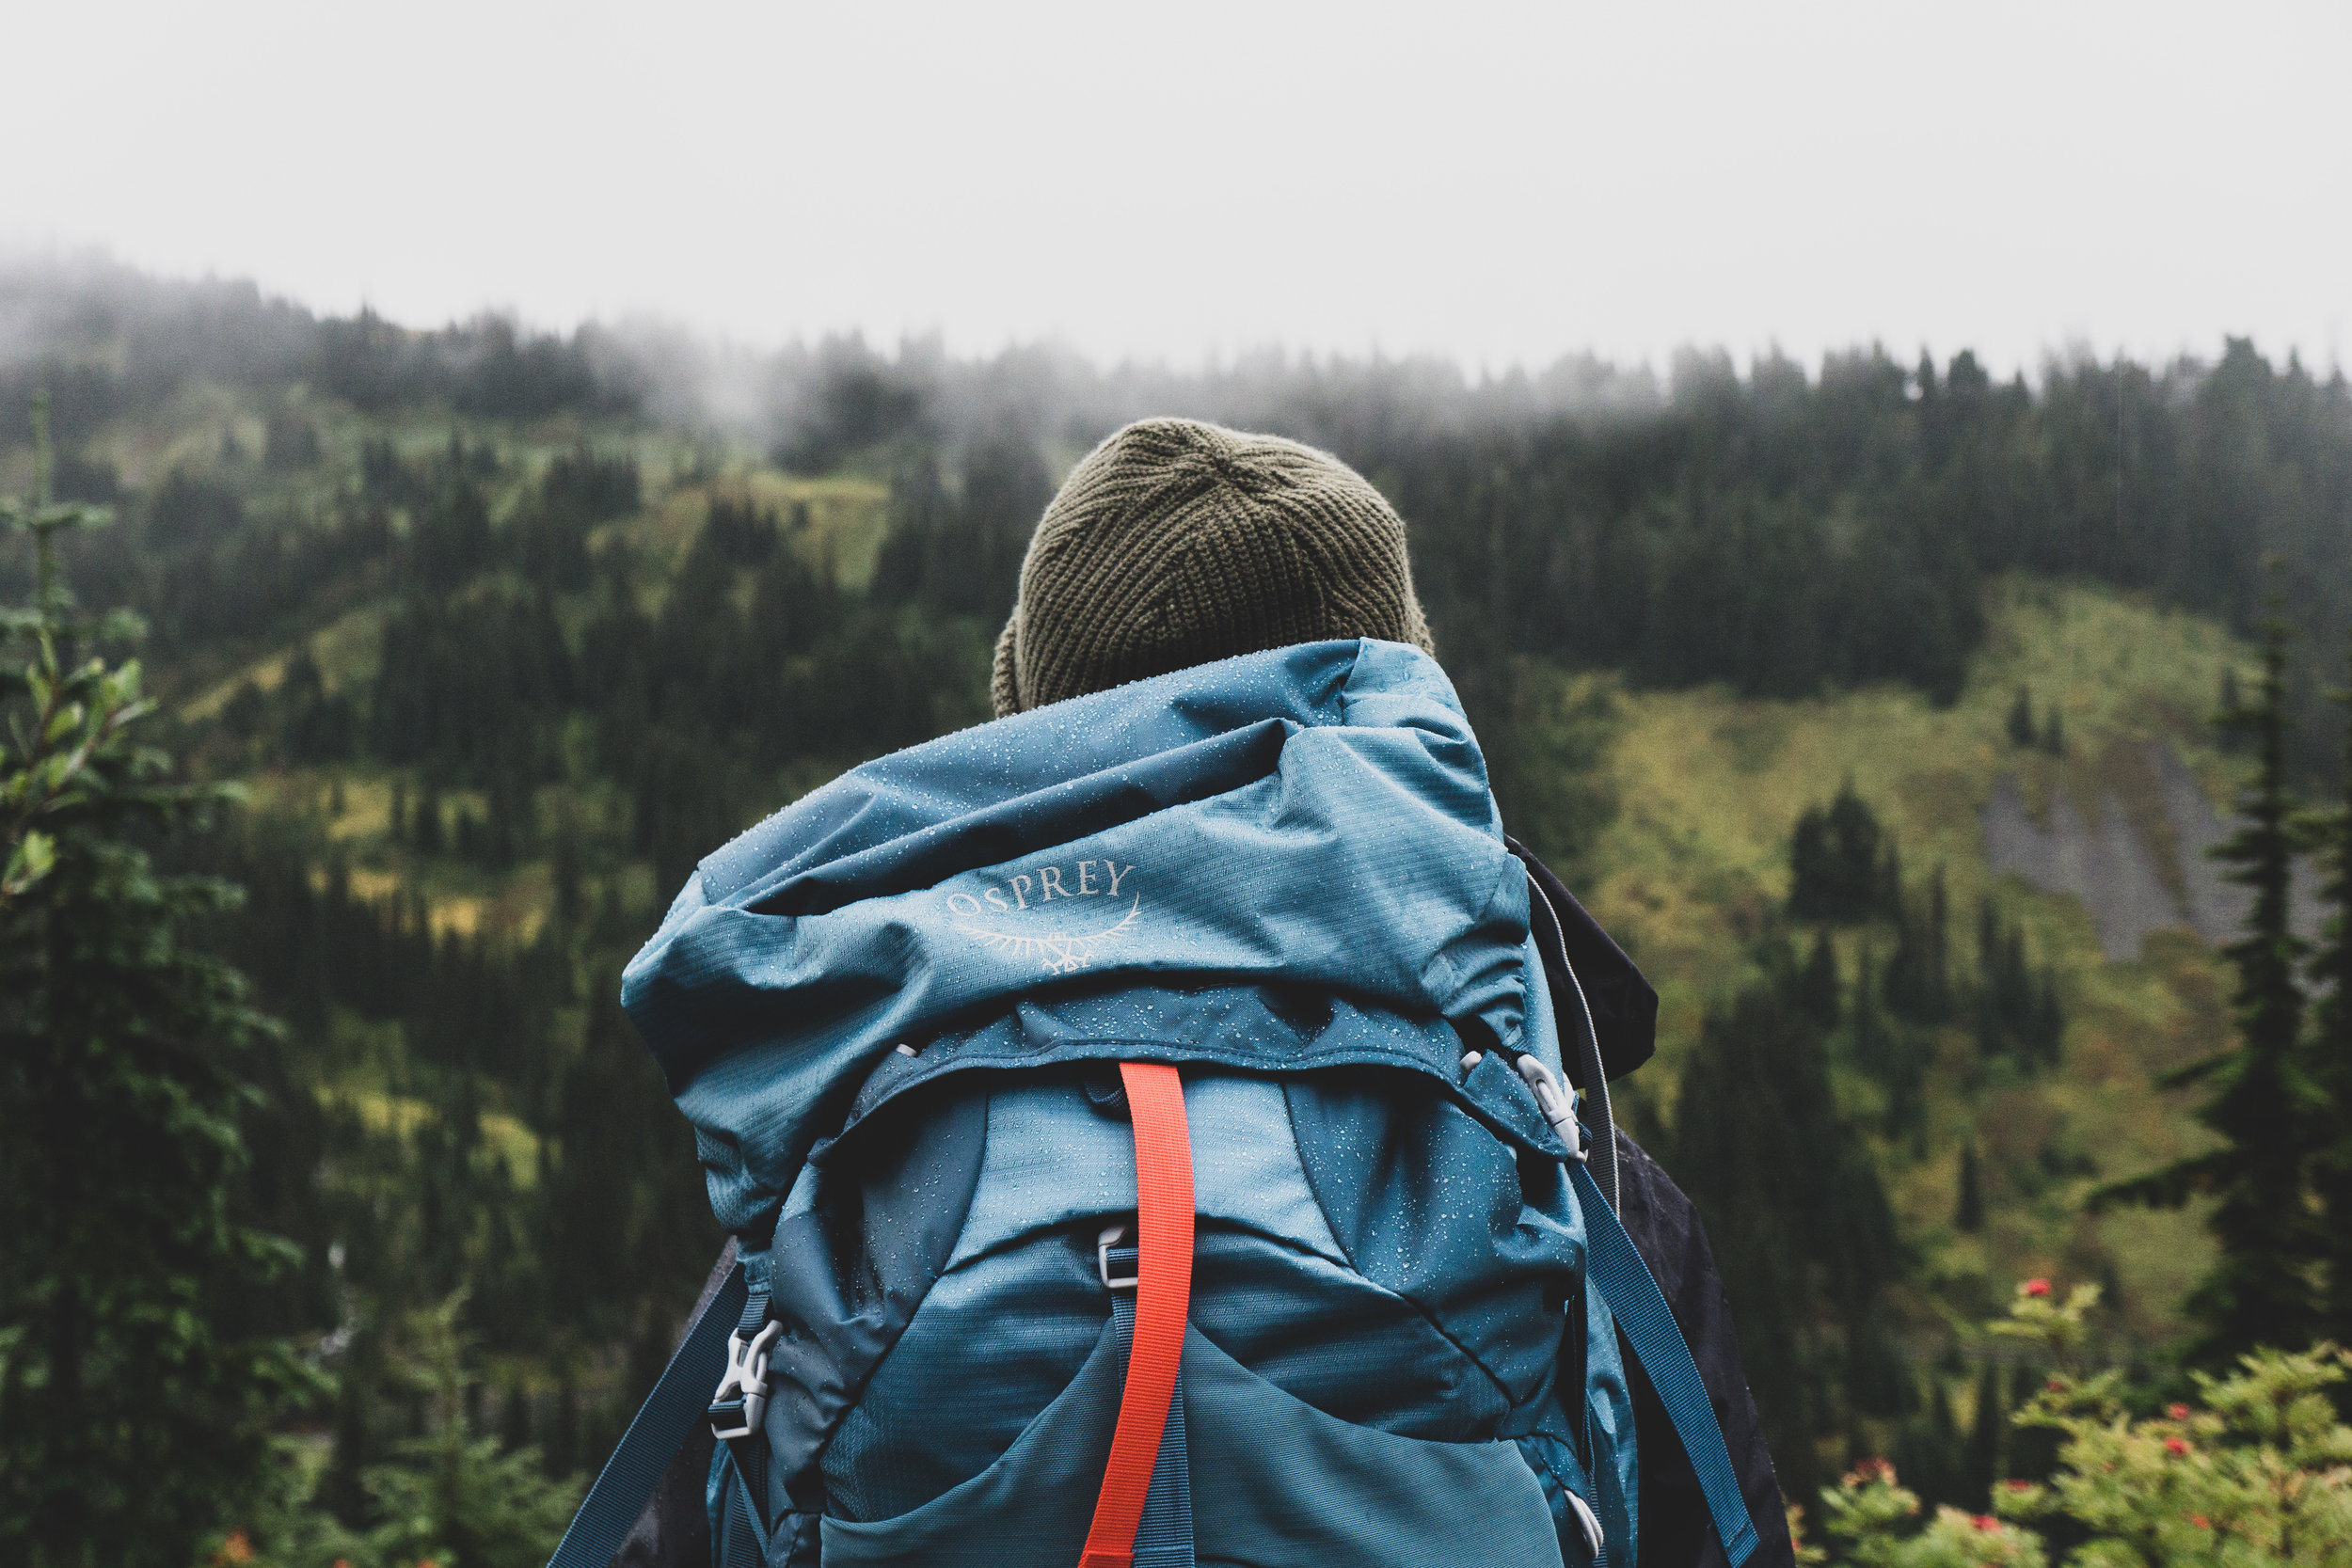 Shift RetreatDates will be posted in January 2020* - 3 1/2 days of backpacking and guided self-reflection in the Bighorn Backcountry of the Rocky Mountains of Alberta.Cost: $750.00